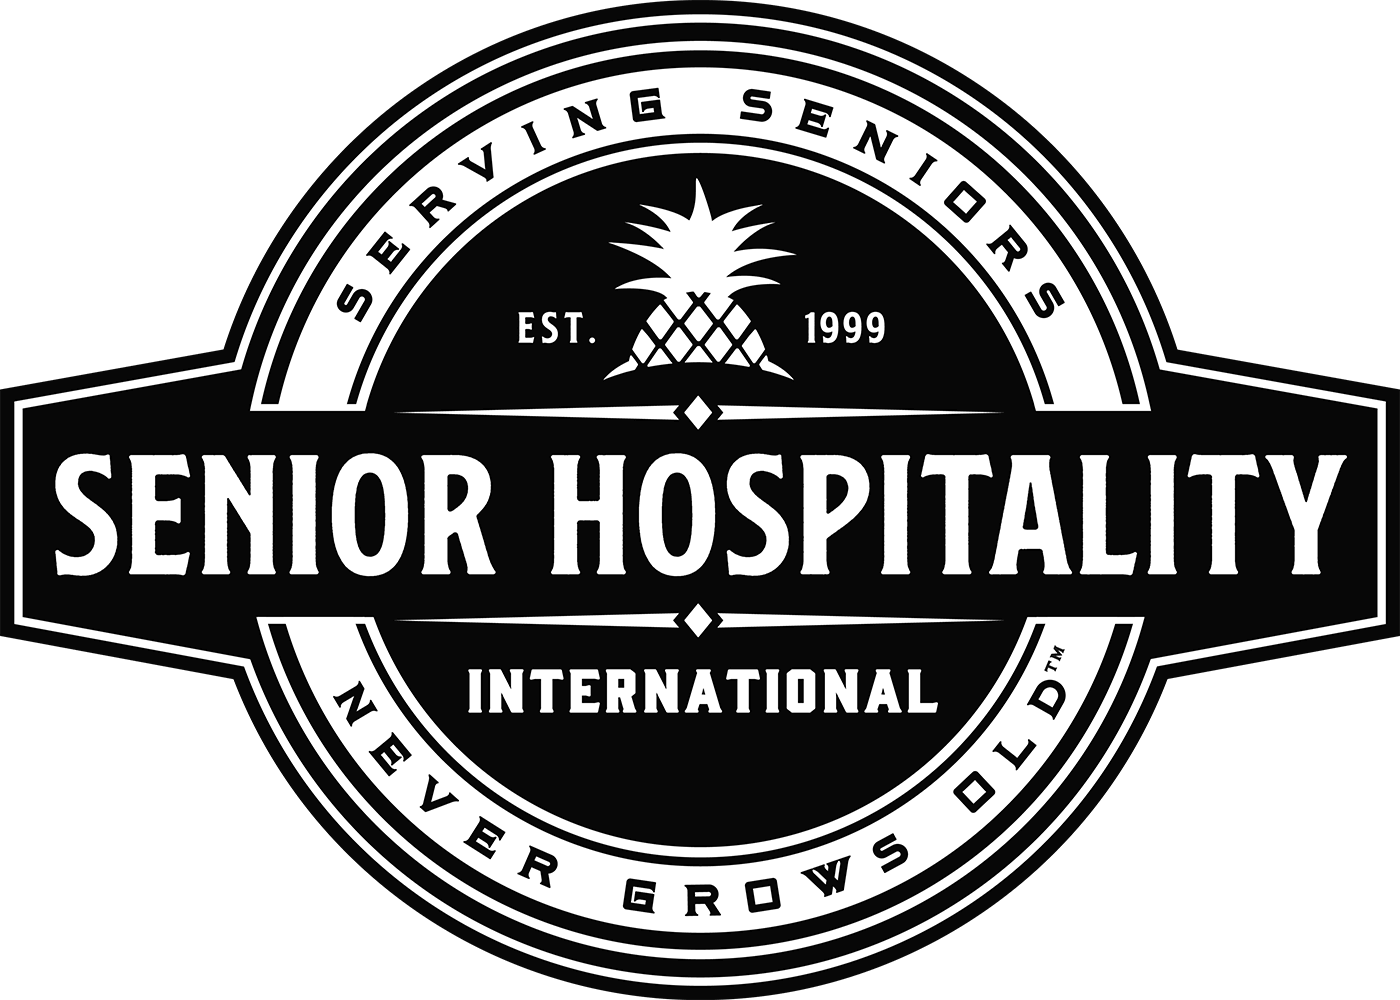 Senior Hospitality International